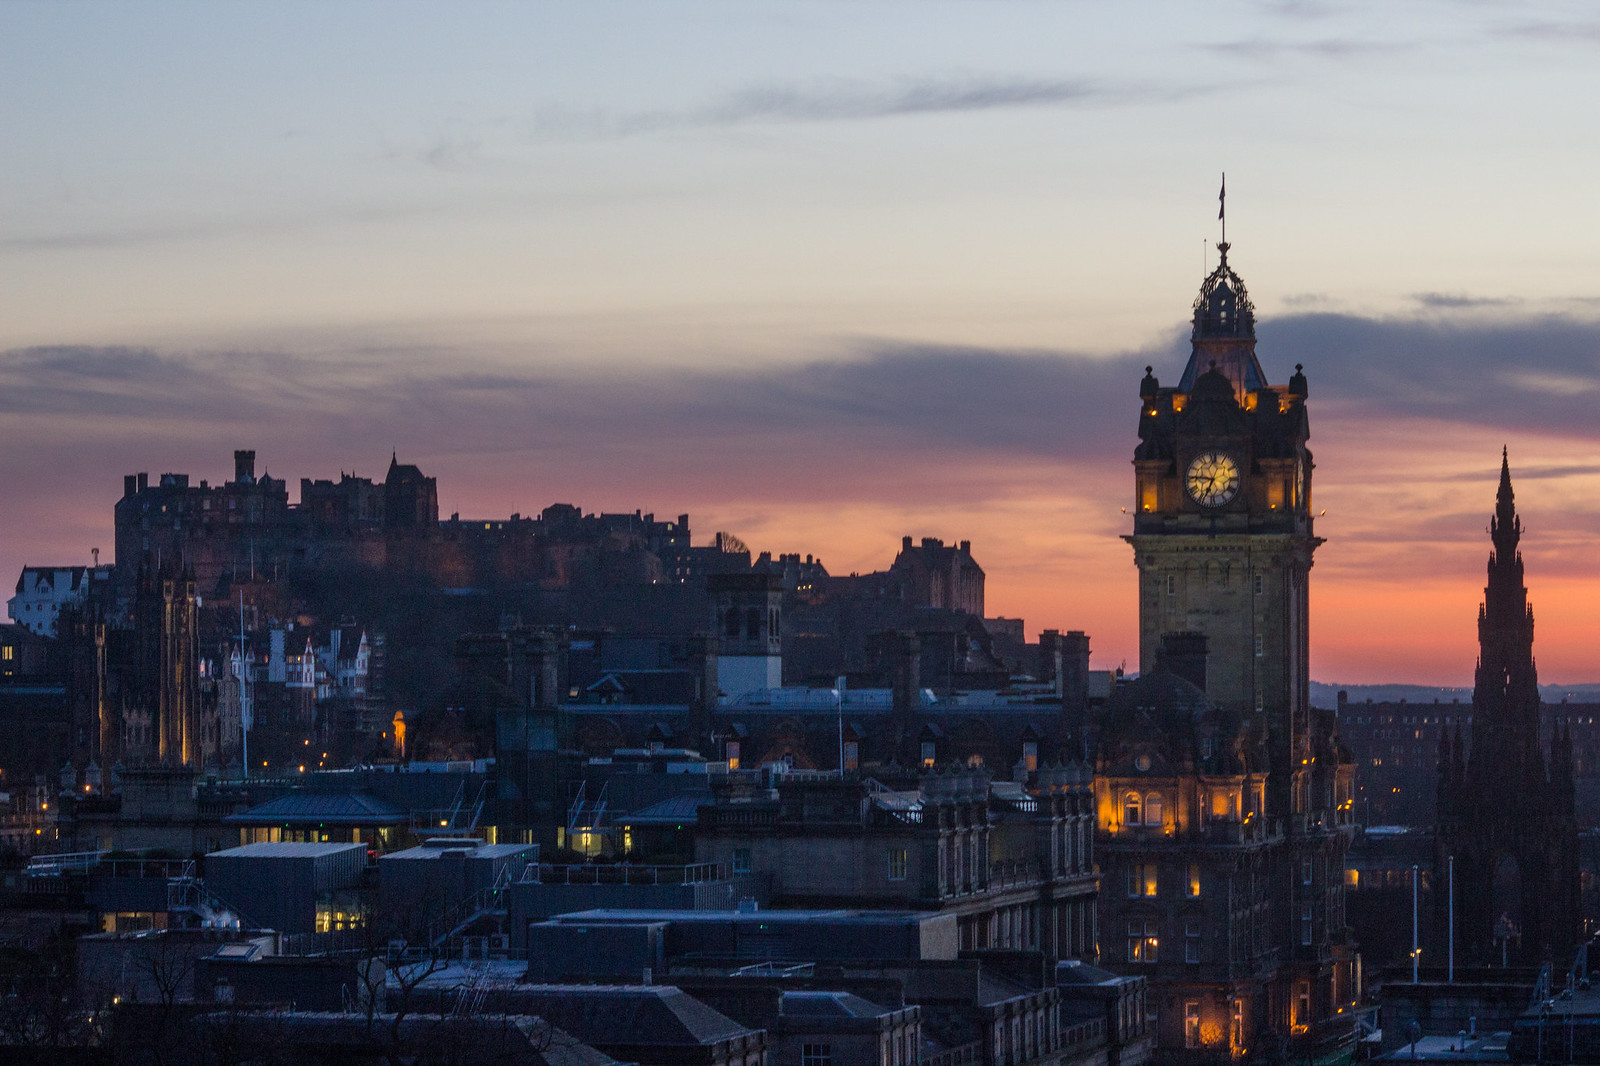 Purple, pink and orange sunset from Calton Hill over Edinburgh Castle and The Balmoral